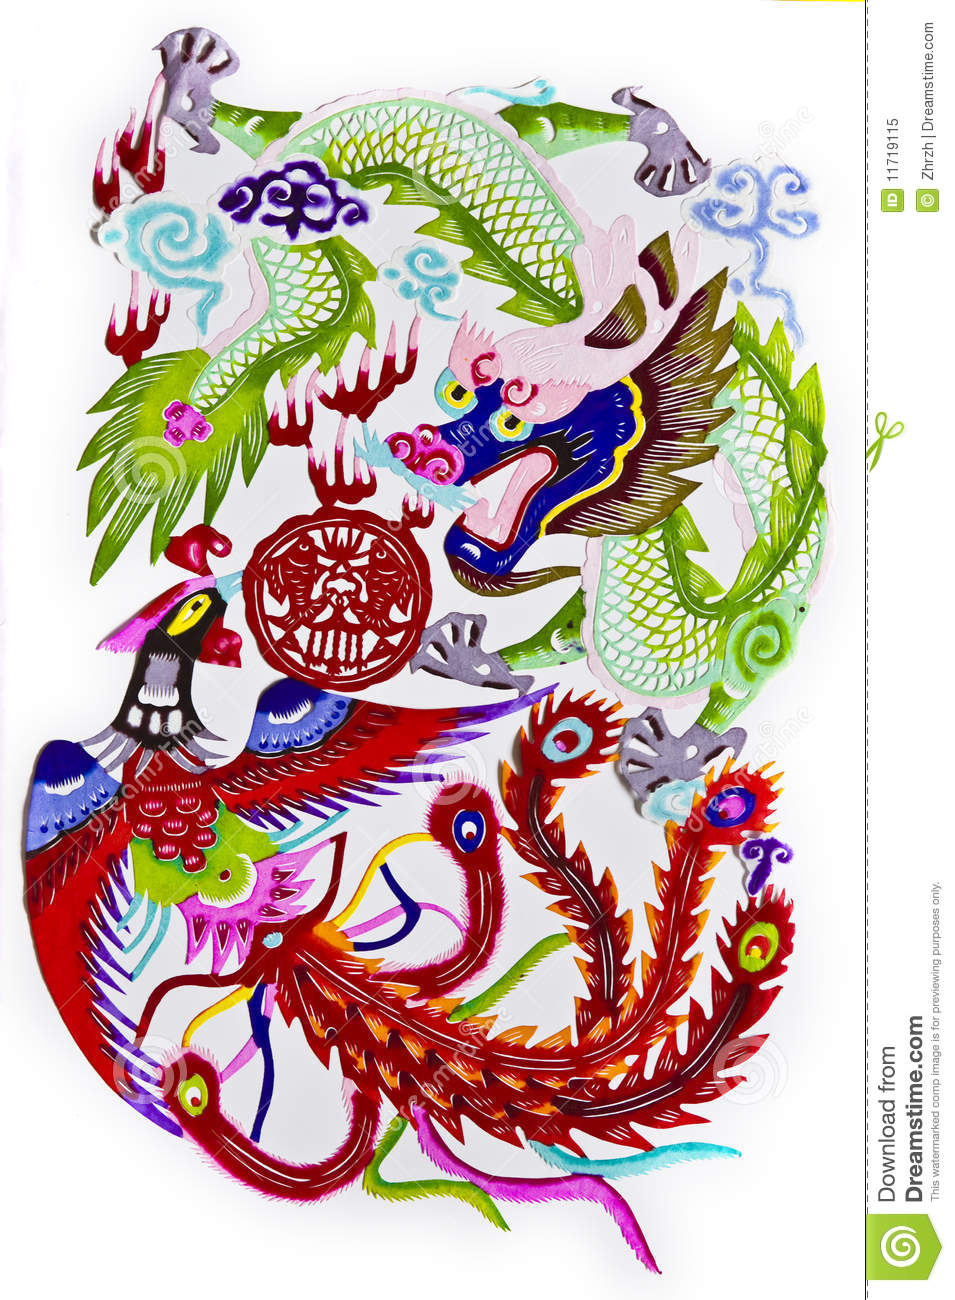 Dragon phoenix royalty free stock photo image 11719115 for Chinese paper cutting templates dragon